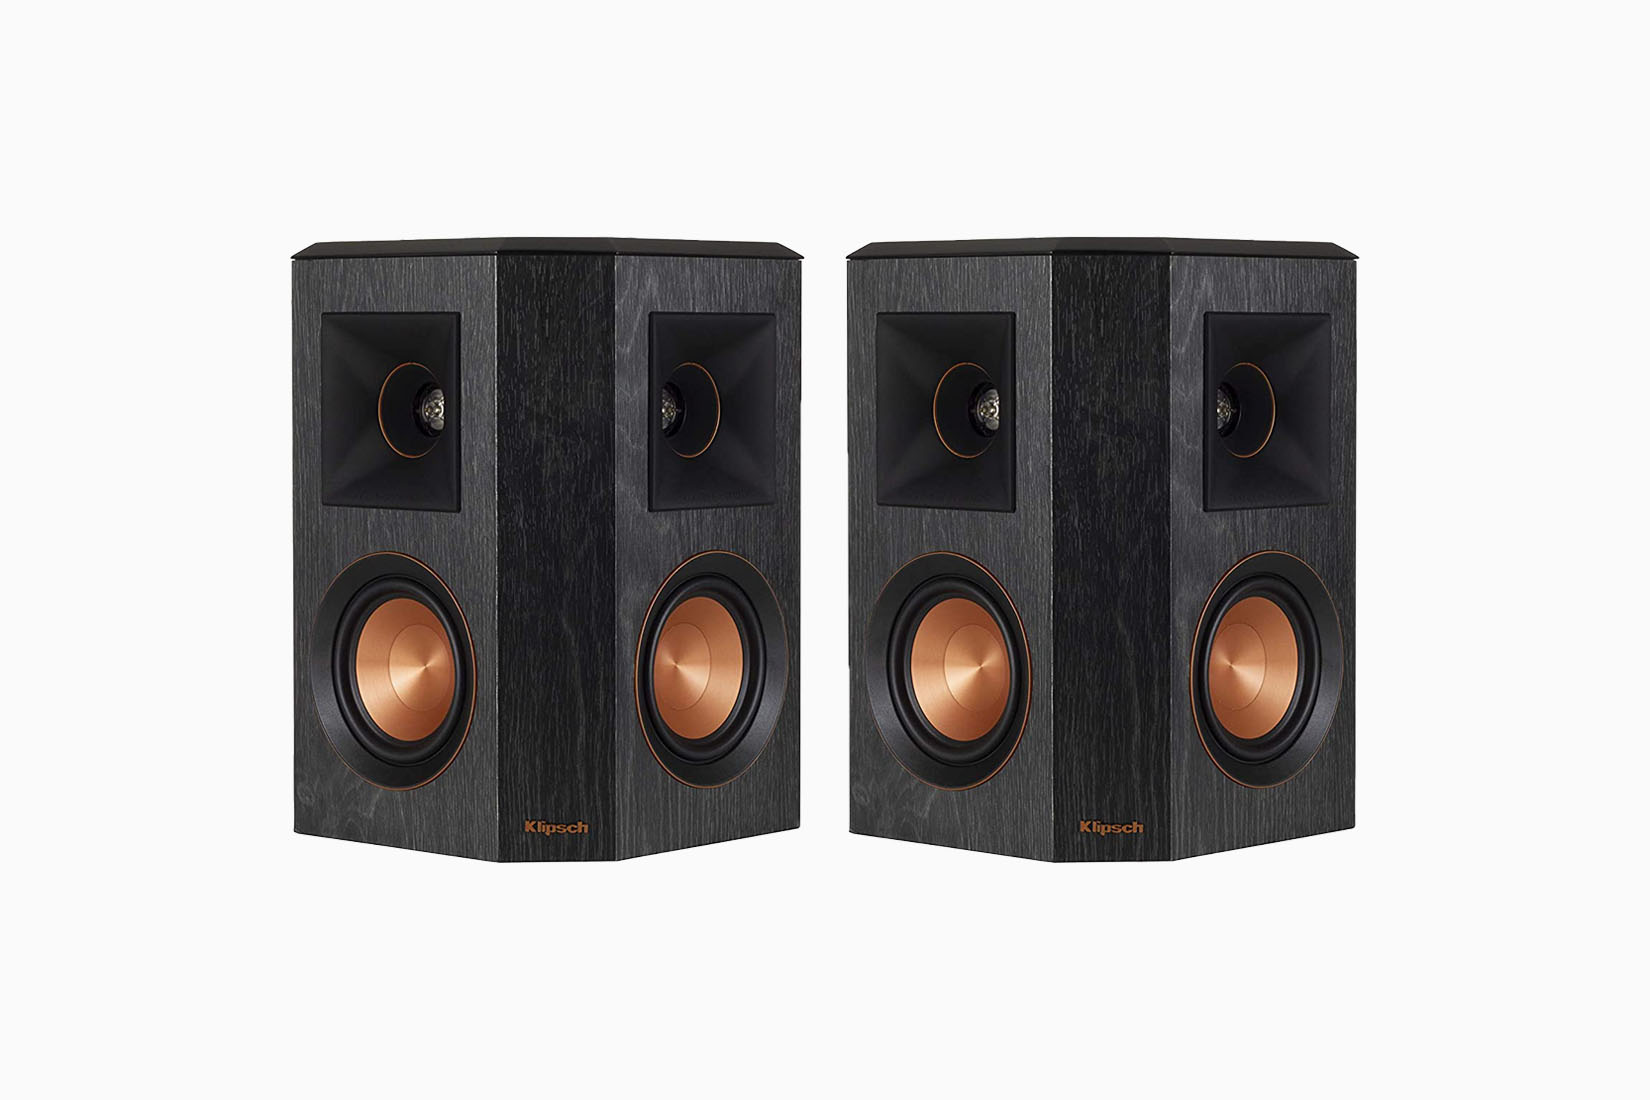 best home theater system klipsch review Luxe Digital